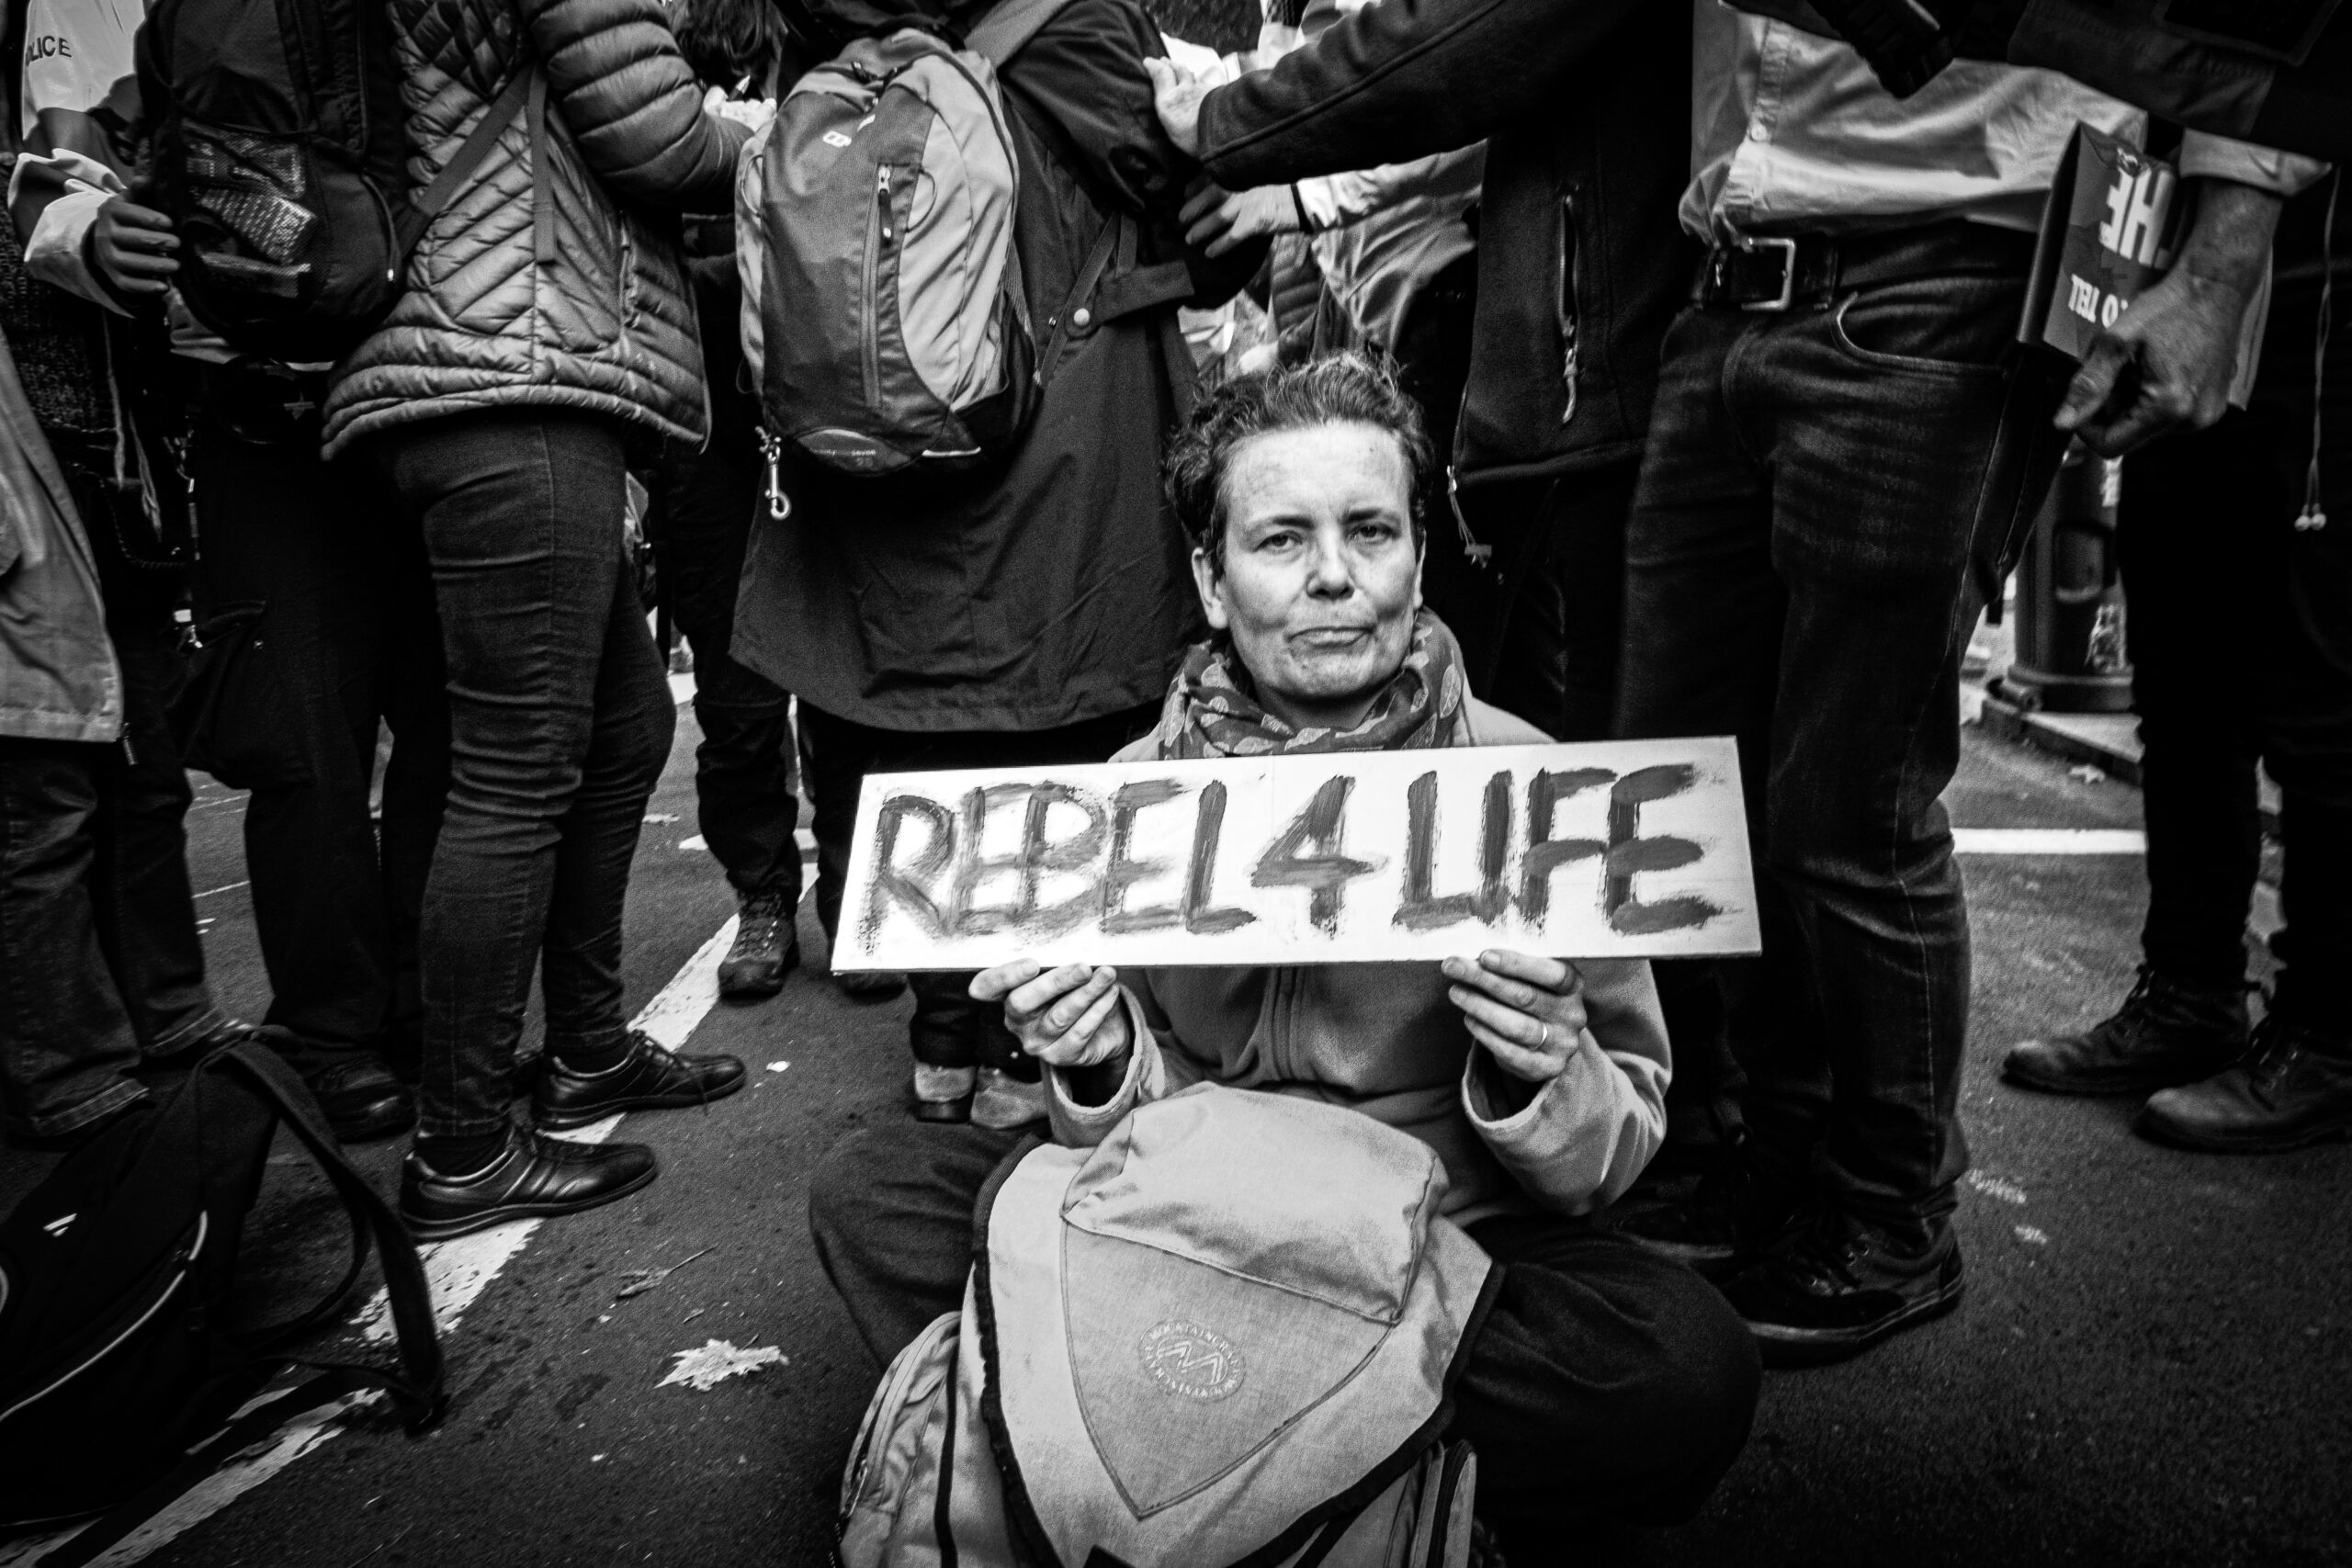 Photo reportage about Extinction Rebellion protest in London, 2020 by Vincenzo Lullo Photo